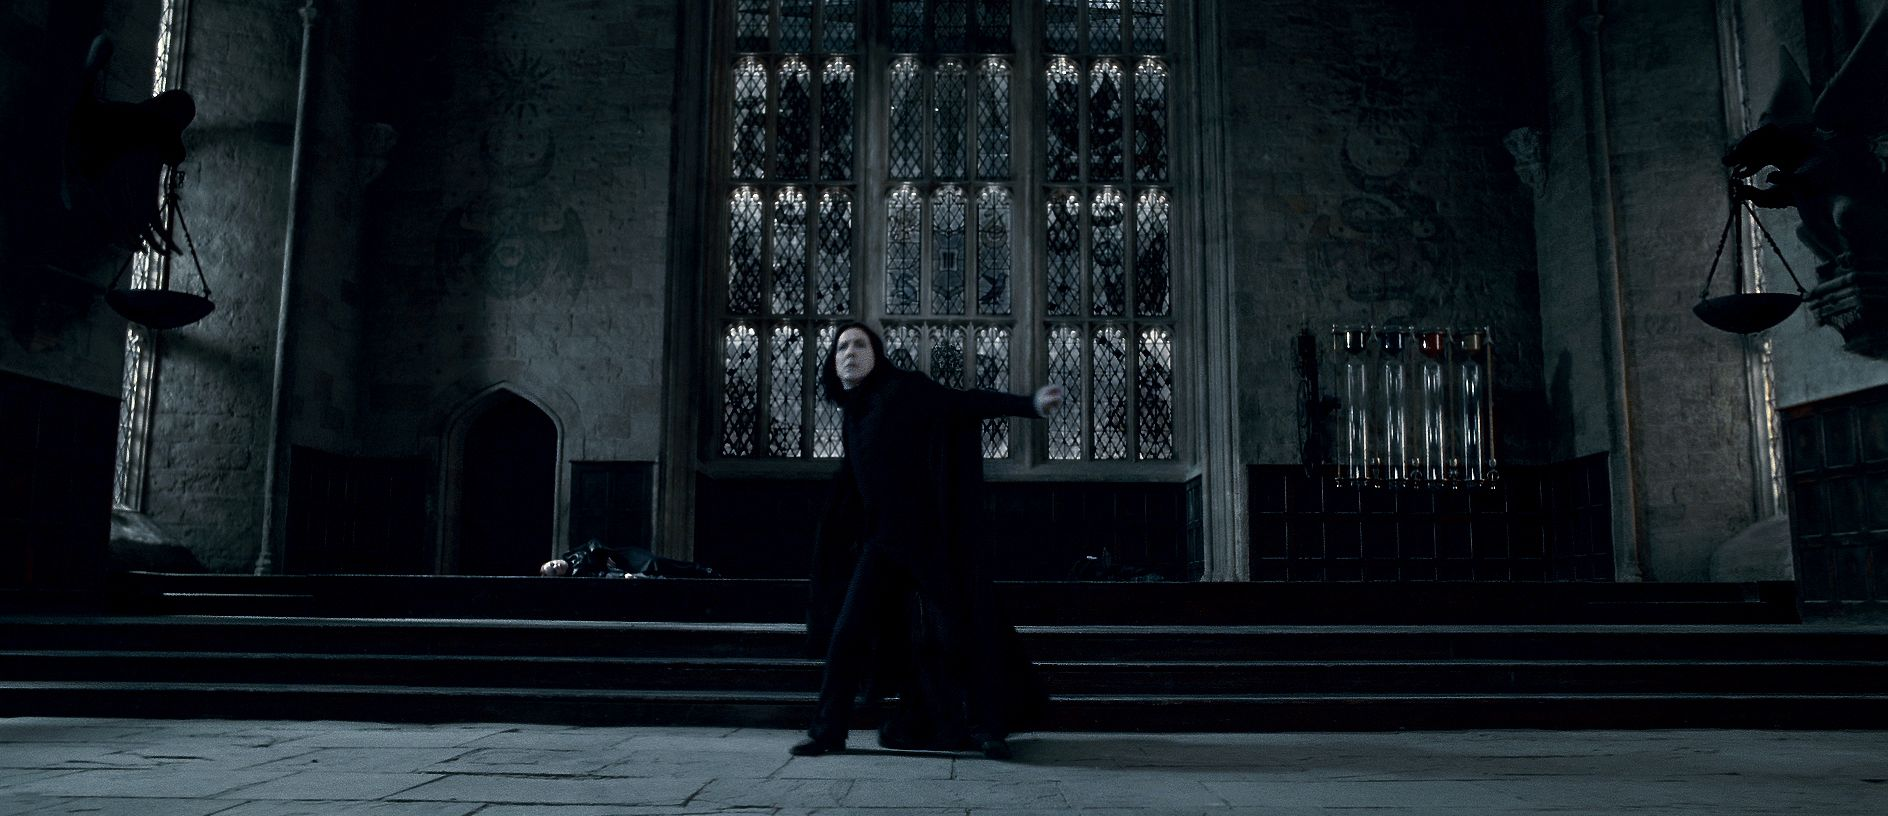 Fantastic Wallpaper Harry Potter Epic - harry-potter-and-the-deathly-hallows-part-2-image-12  Photograph_964938.jpg